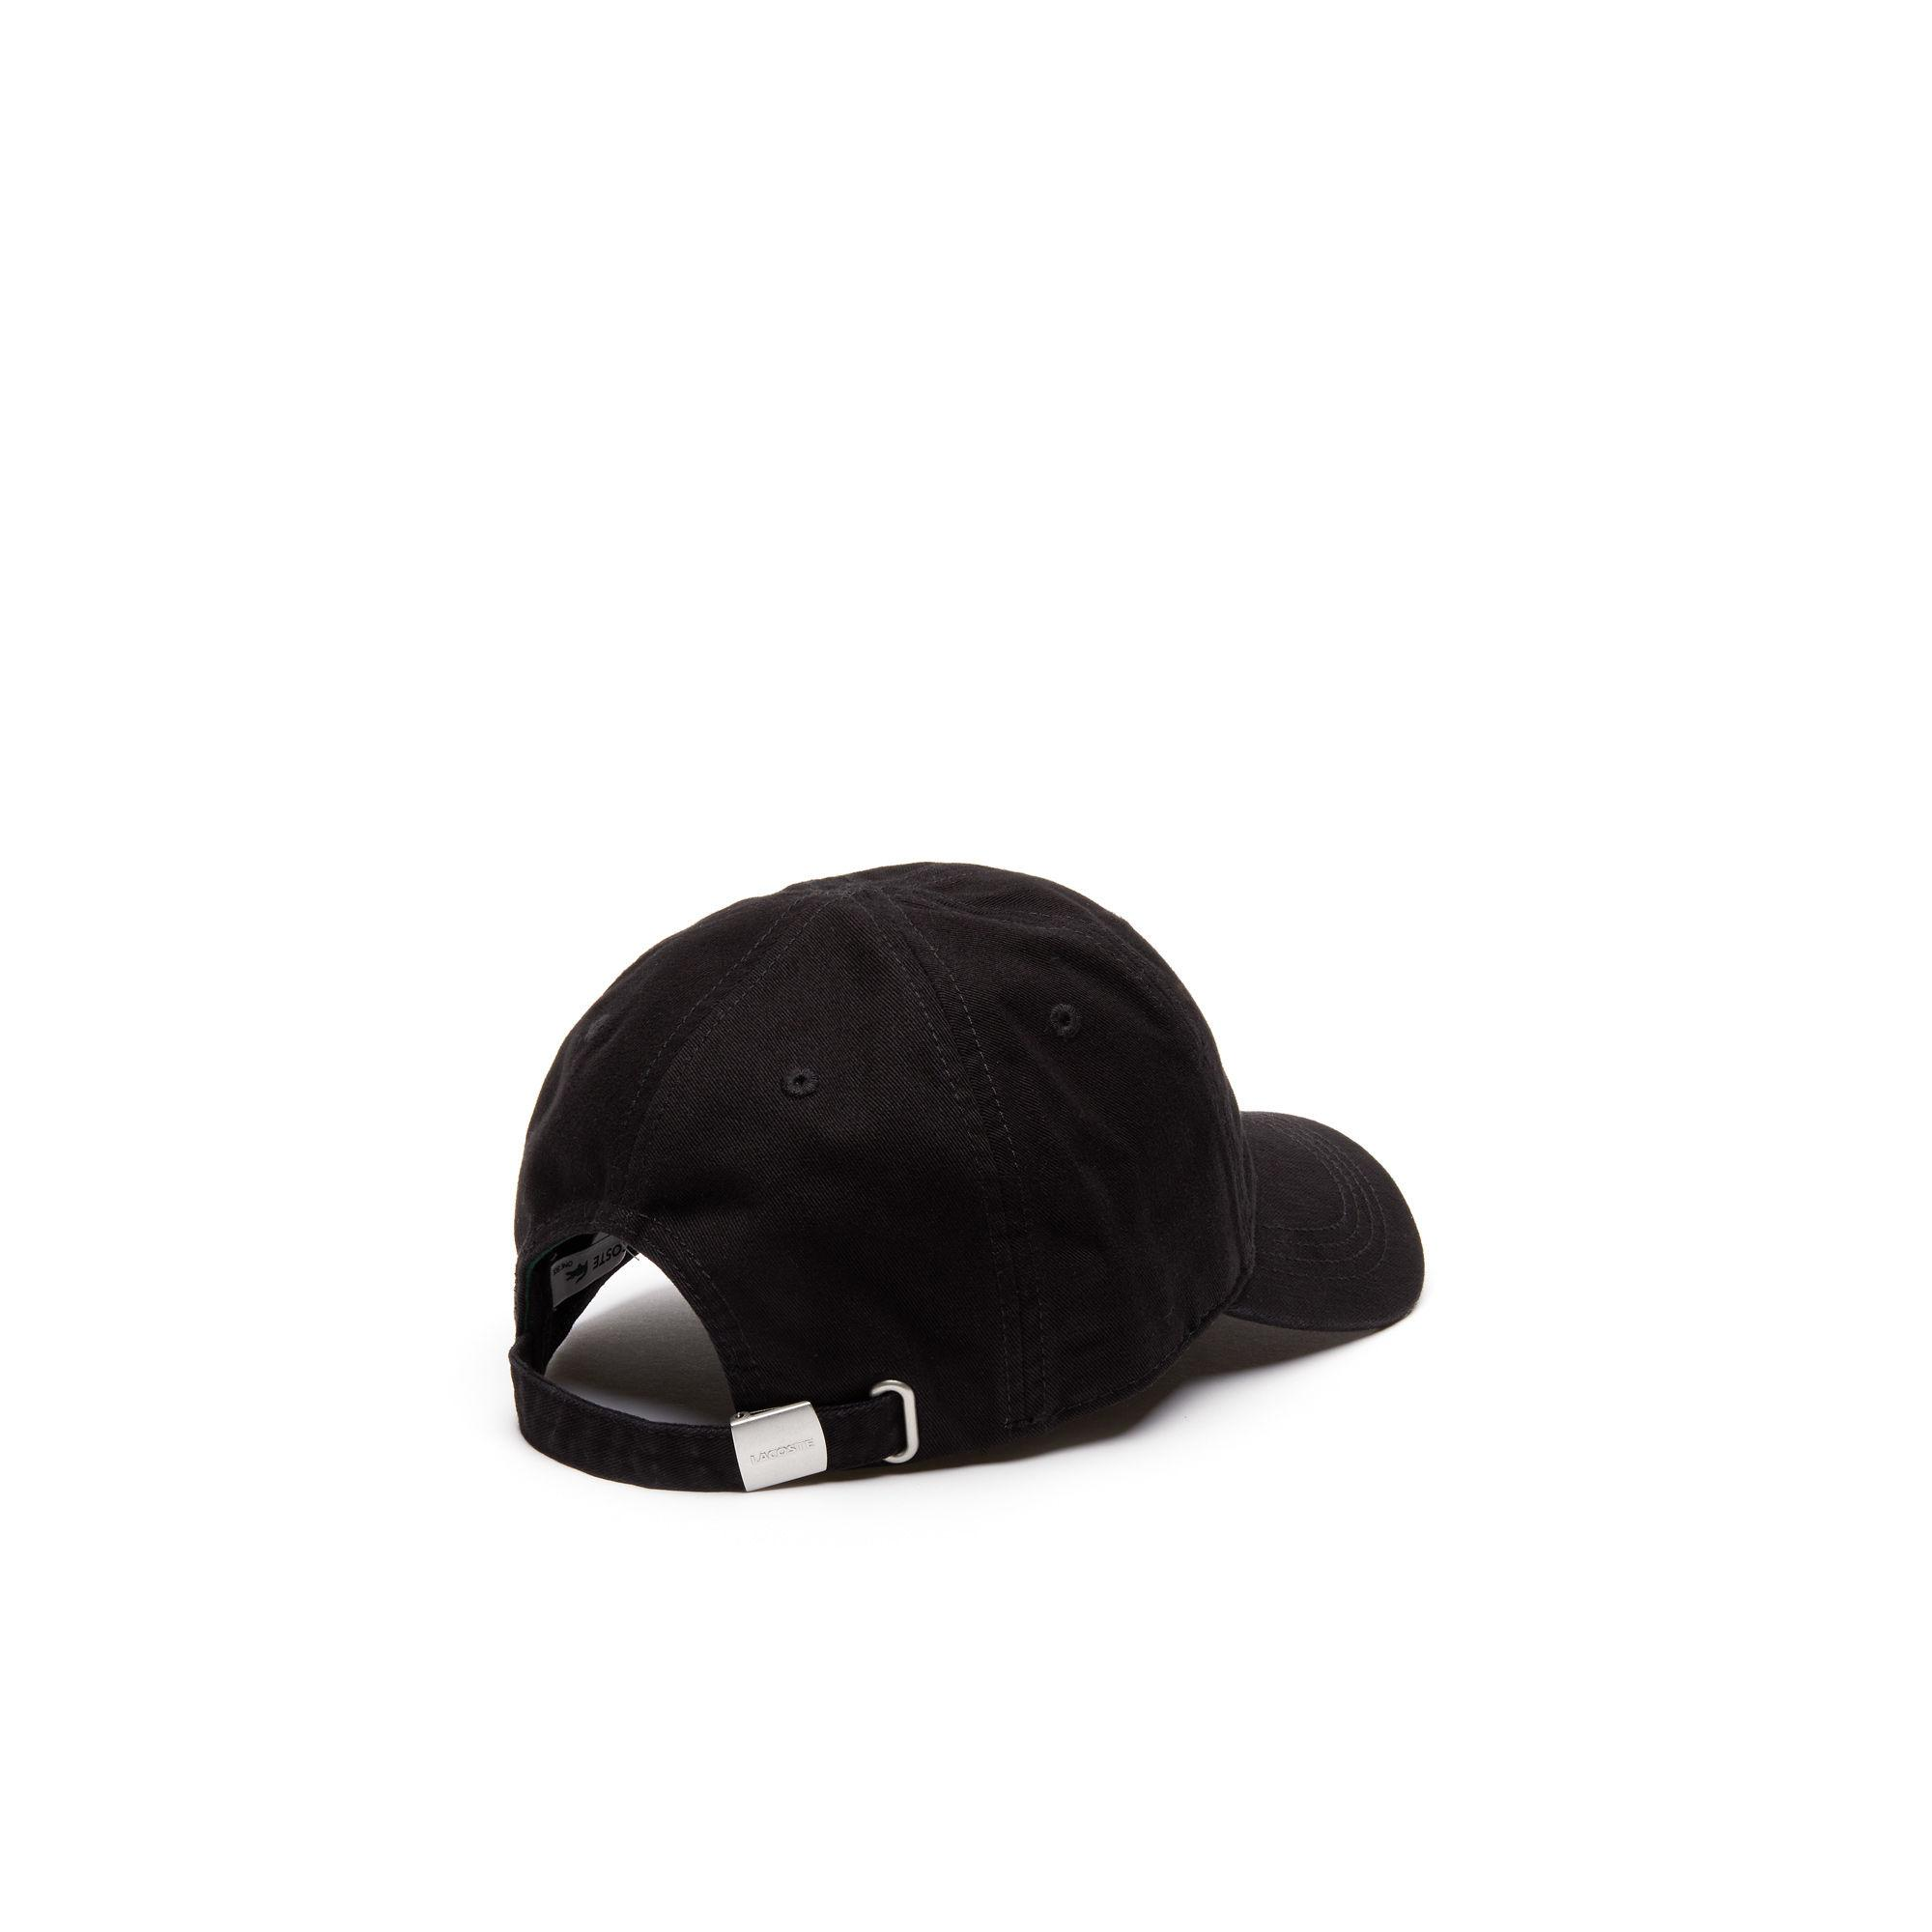 da84954e227 Lacoste - Black Big Croc Gabardine Cap for Men - Lyst. View fullscreen